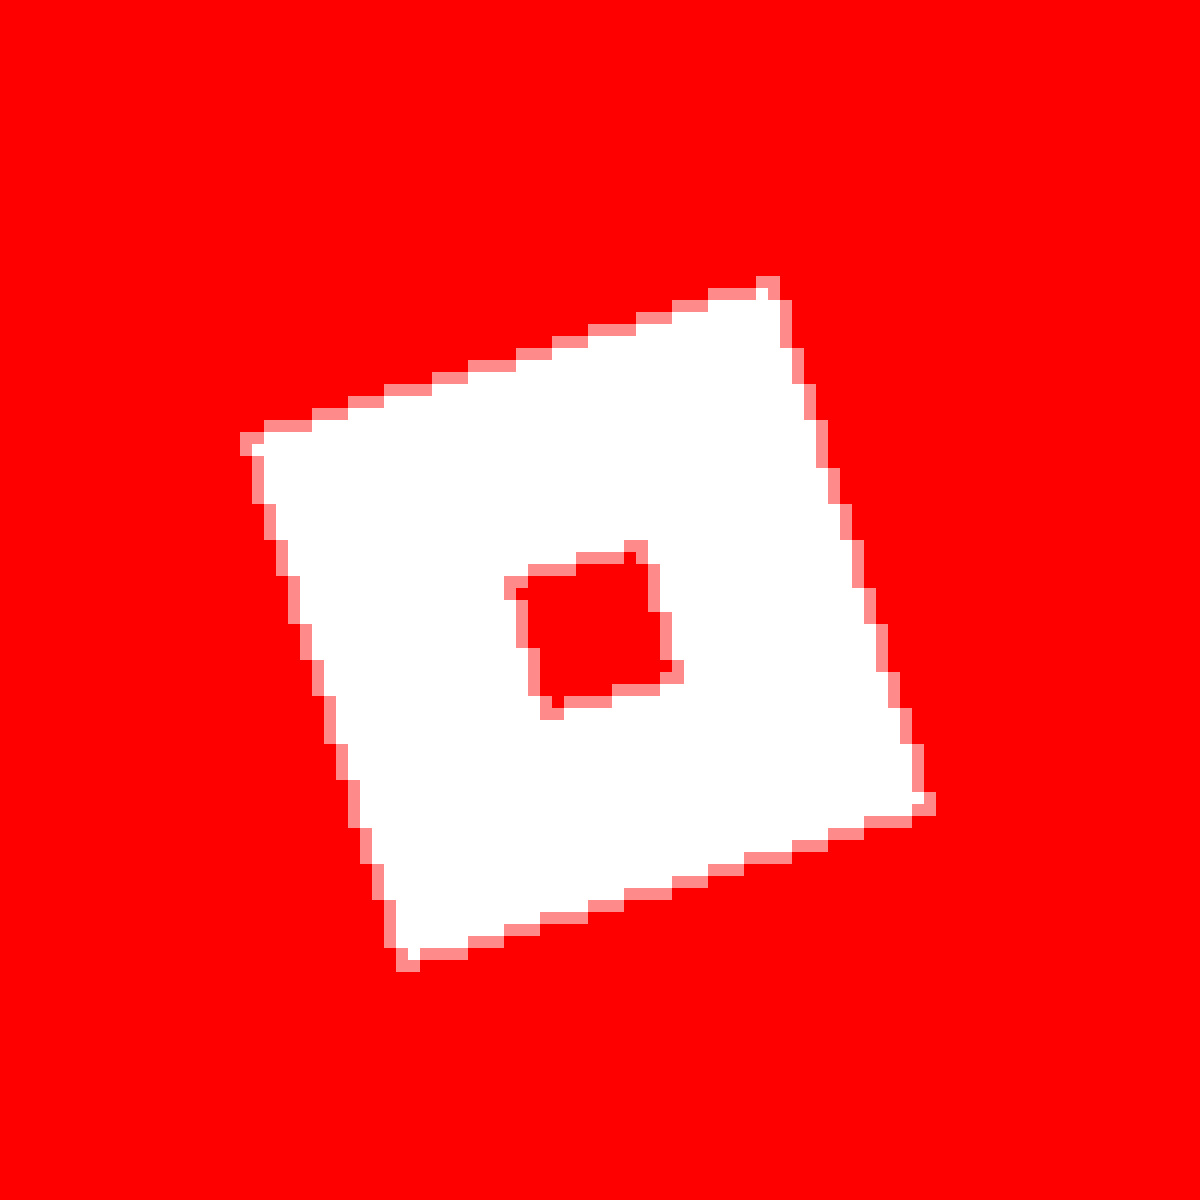 roblox by Technogist